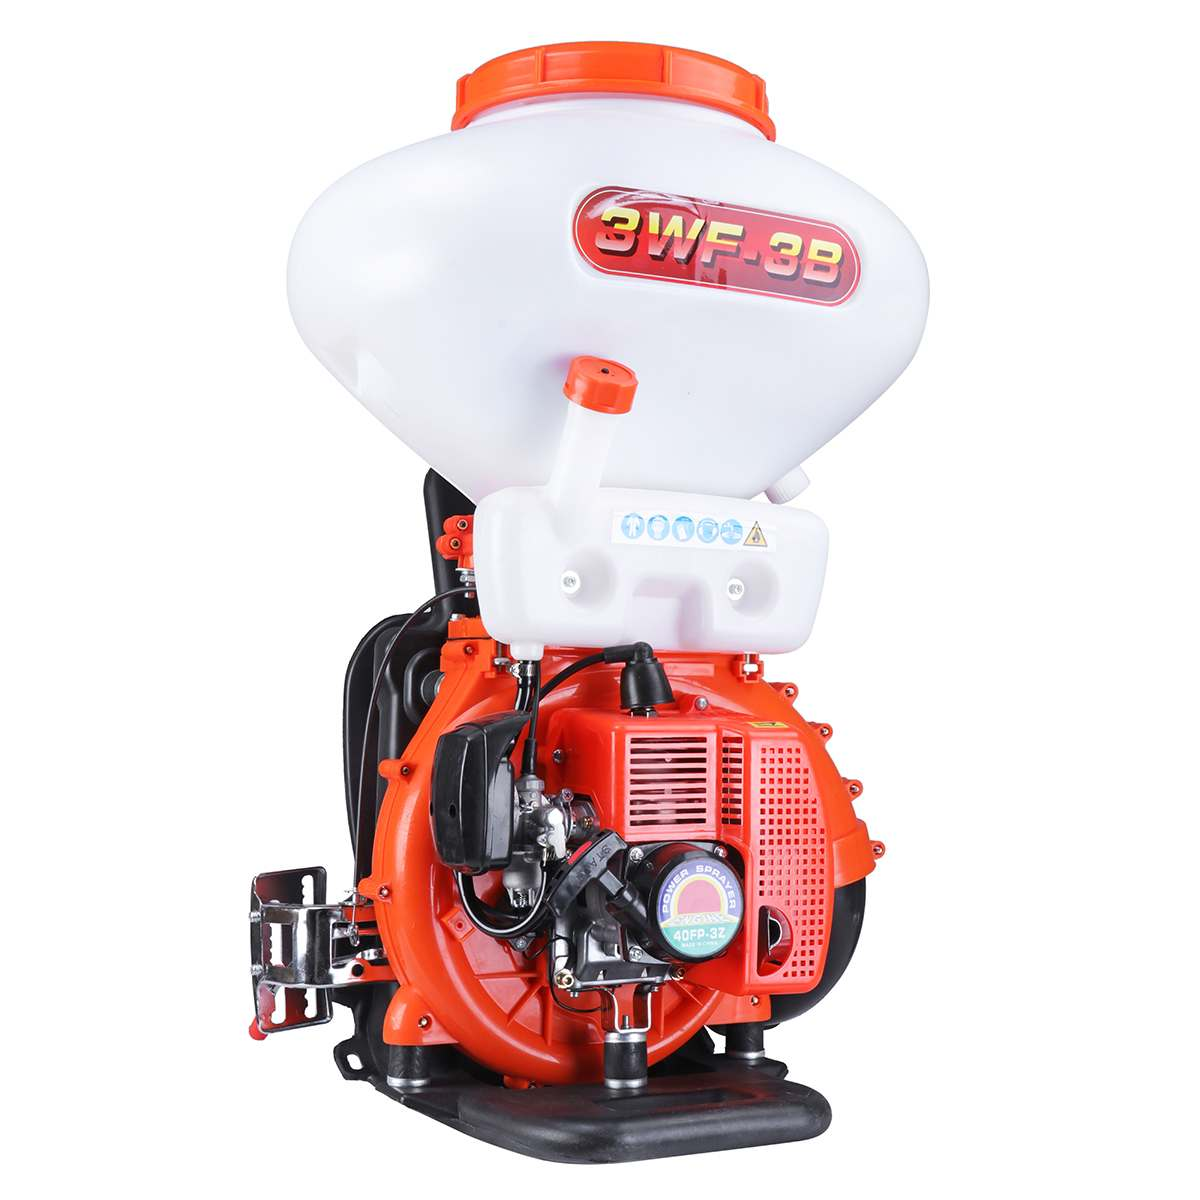 Farm Agriculture Mist Duster Power Sprayer Gasoline Powered 26L 3WF-3B Backpack Blower Fogger Pest Control Garden Tools Supplies